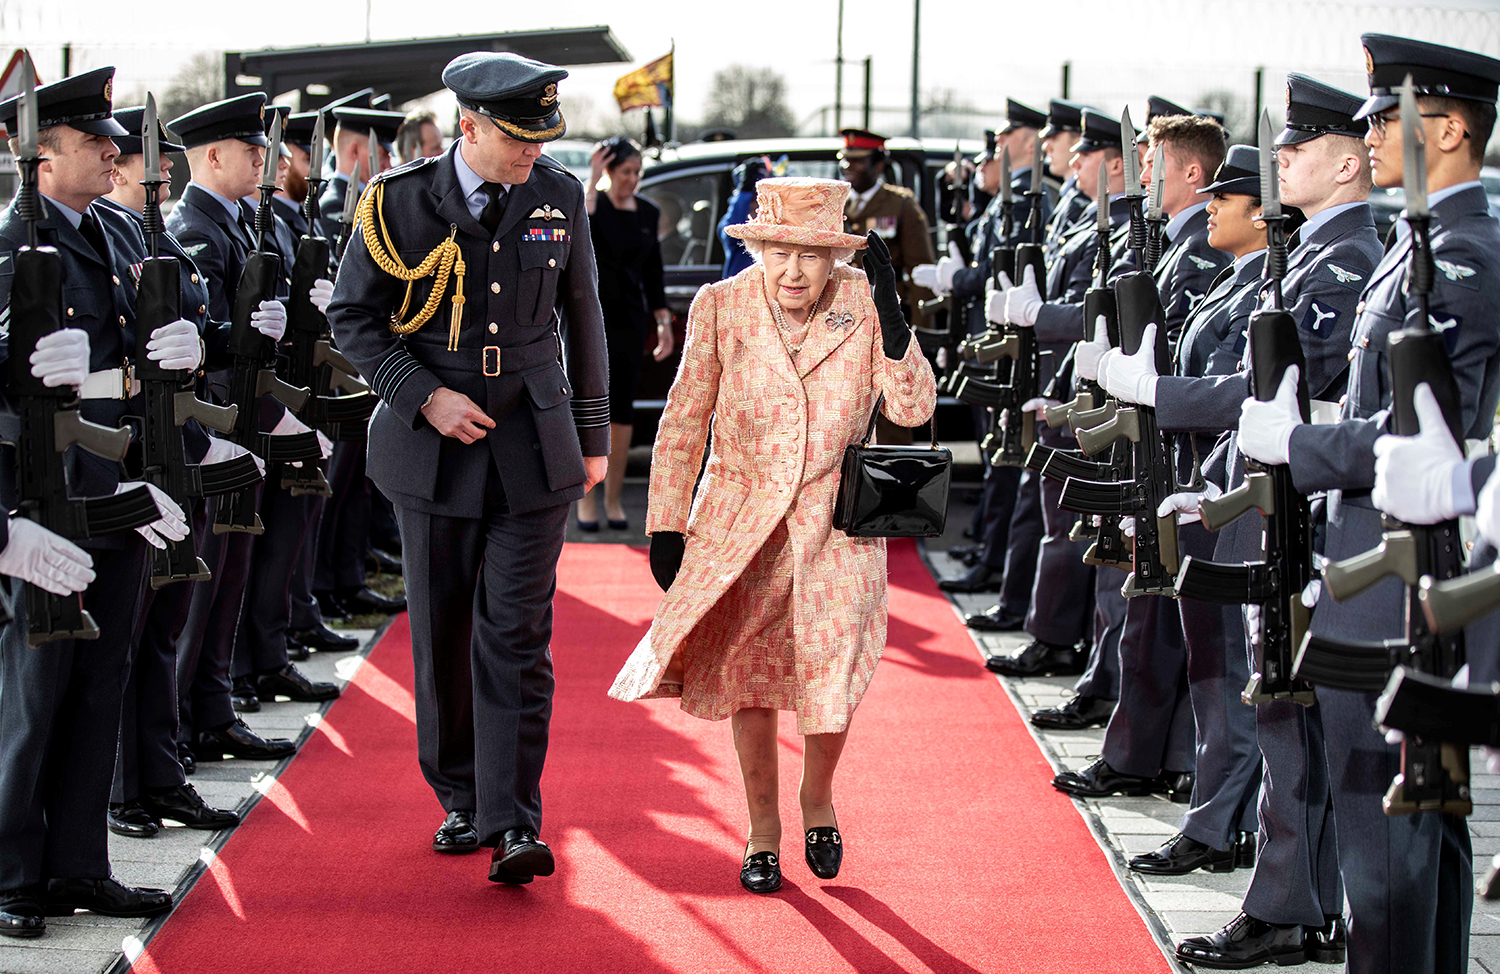 Britain's Queen Elizabeth II pases a guard of honor as she arrives at Royal Air Force base Marham, eastern England, on Feb. 3.  RICHARD POHLE/POOL/AFP via Getty Images